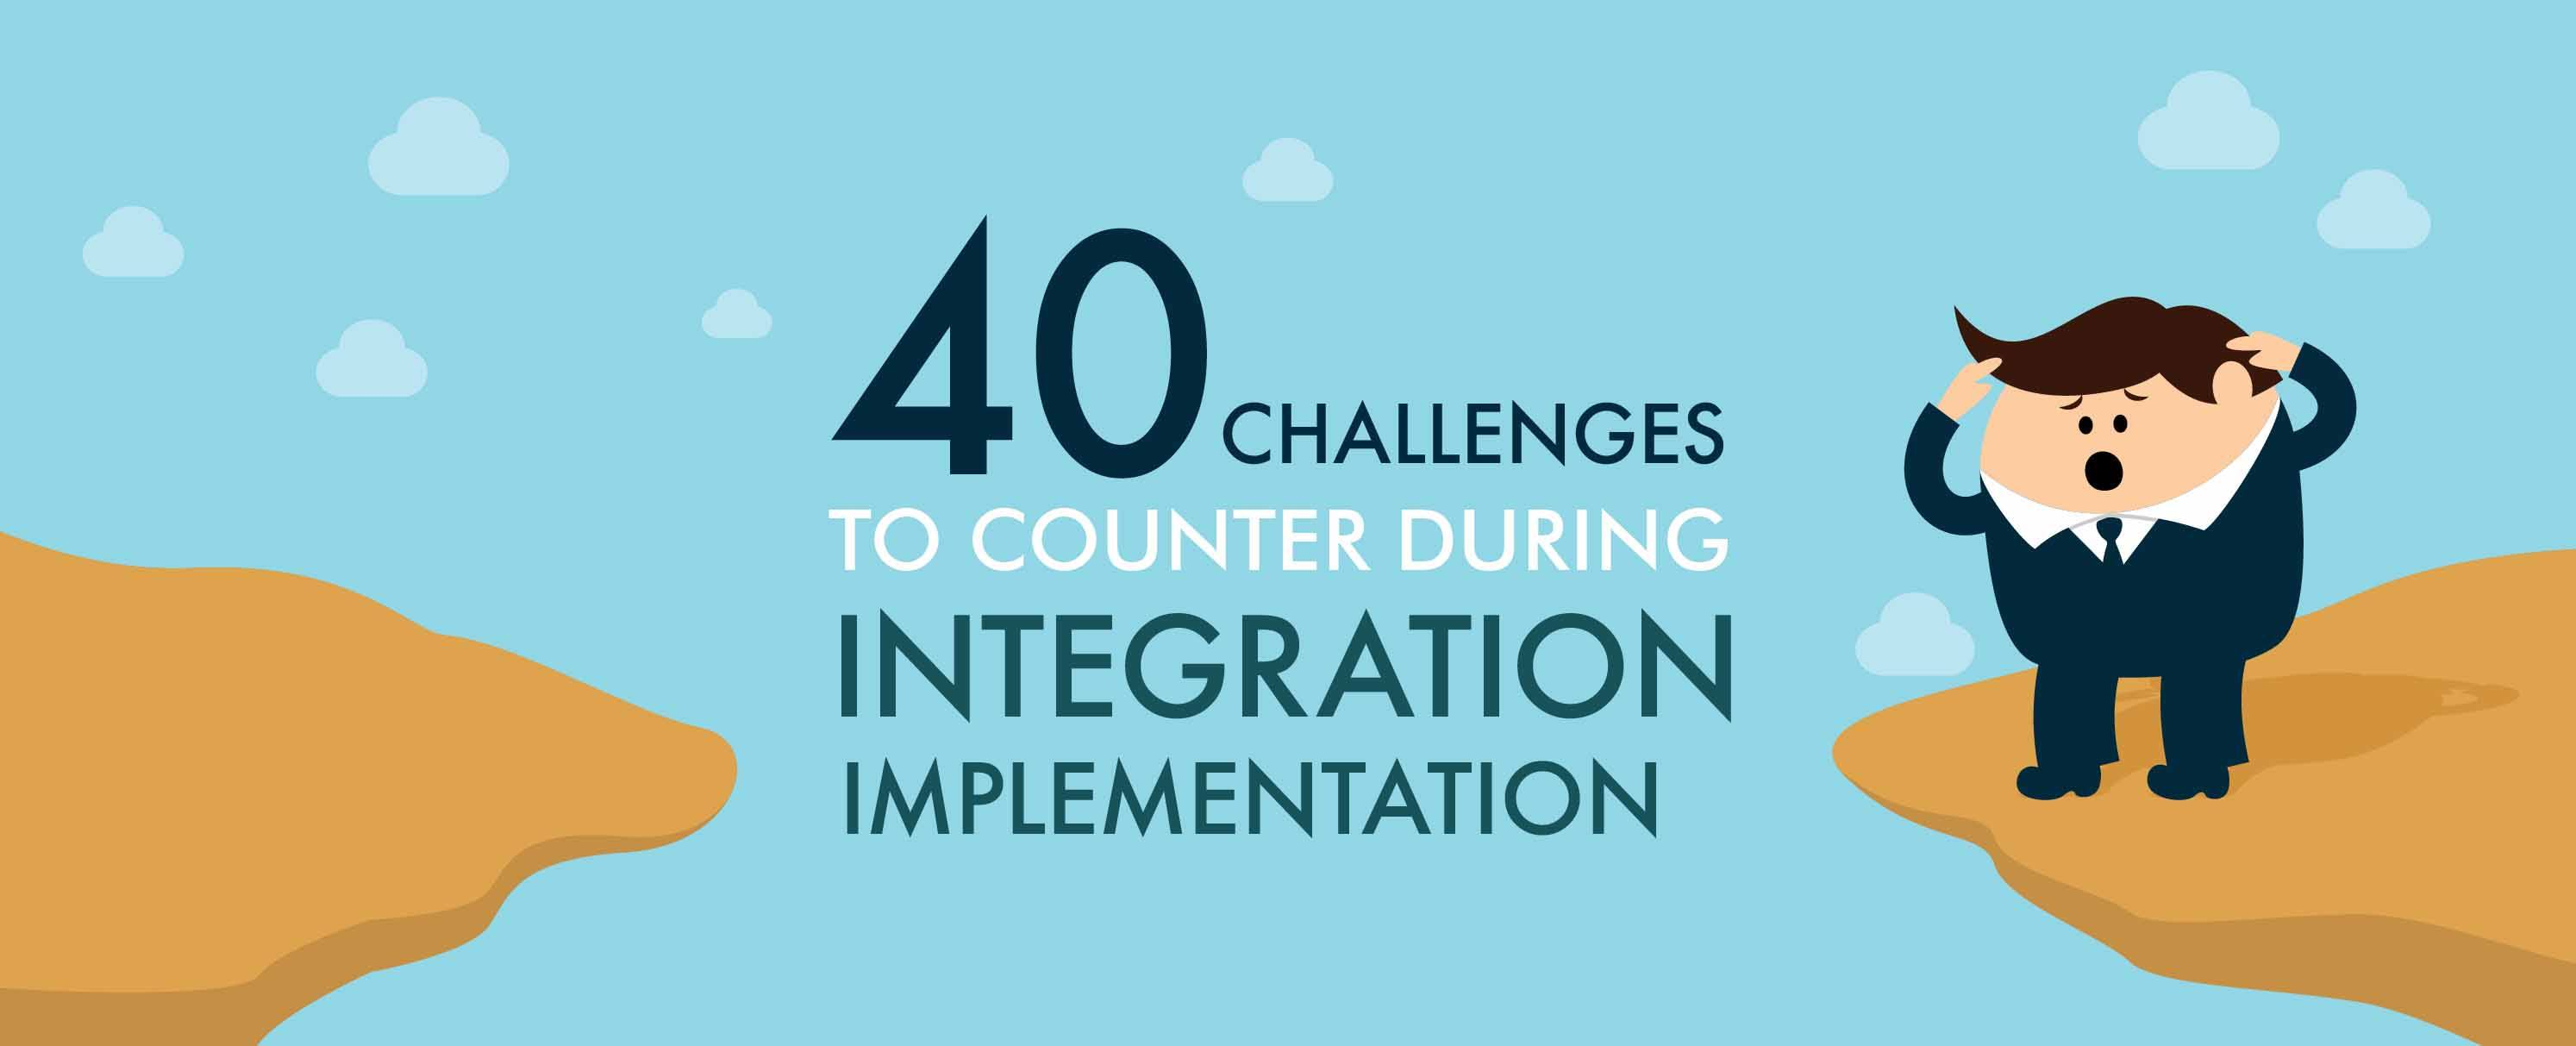 40-Integration-Implementation-Challenges